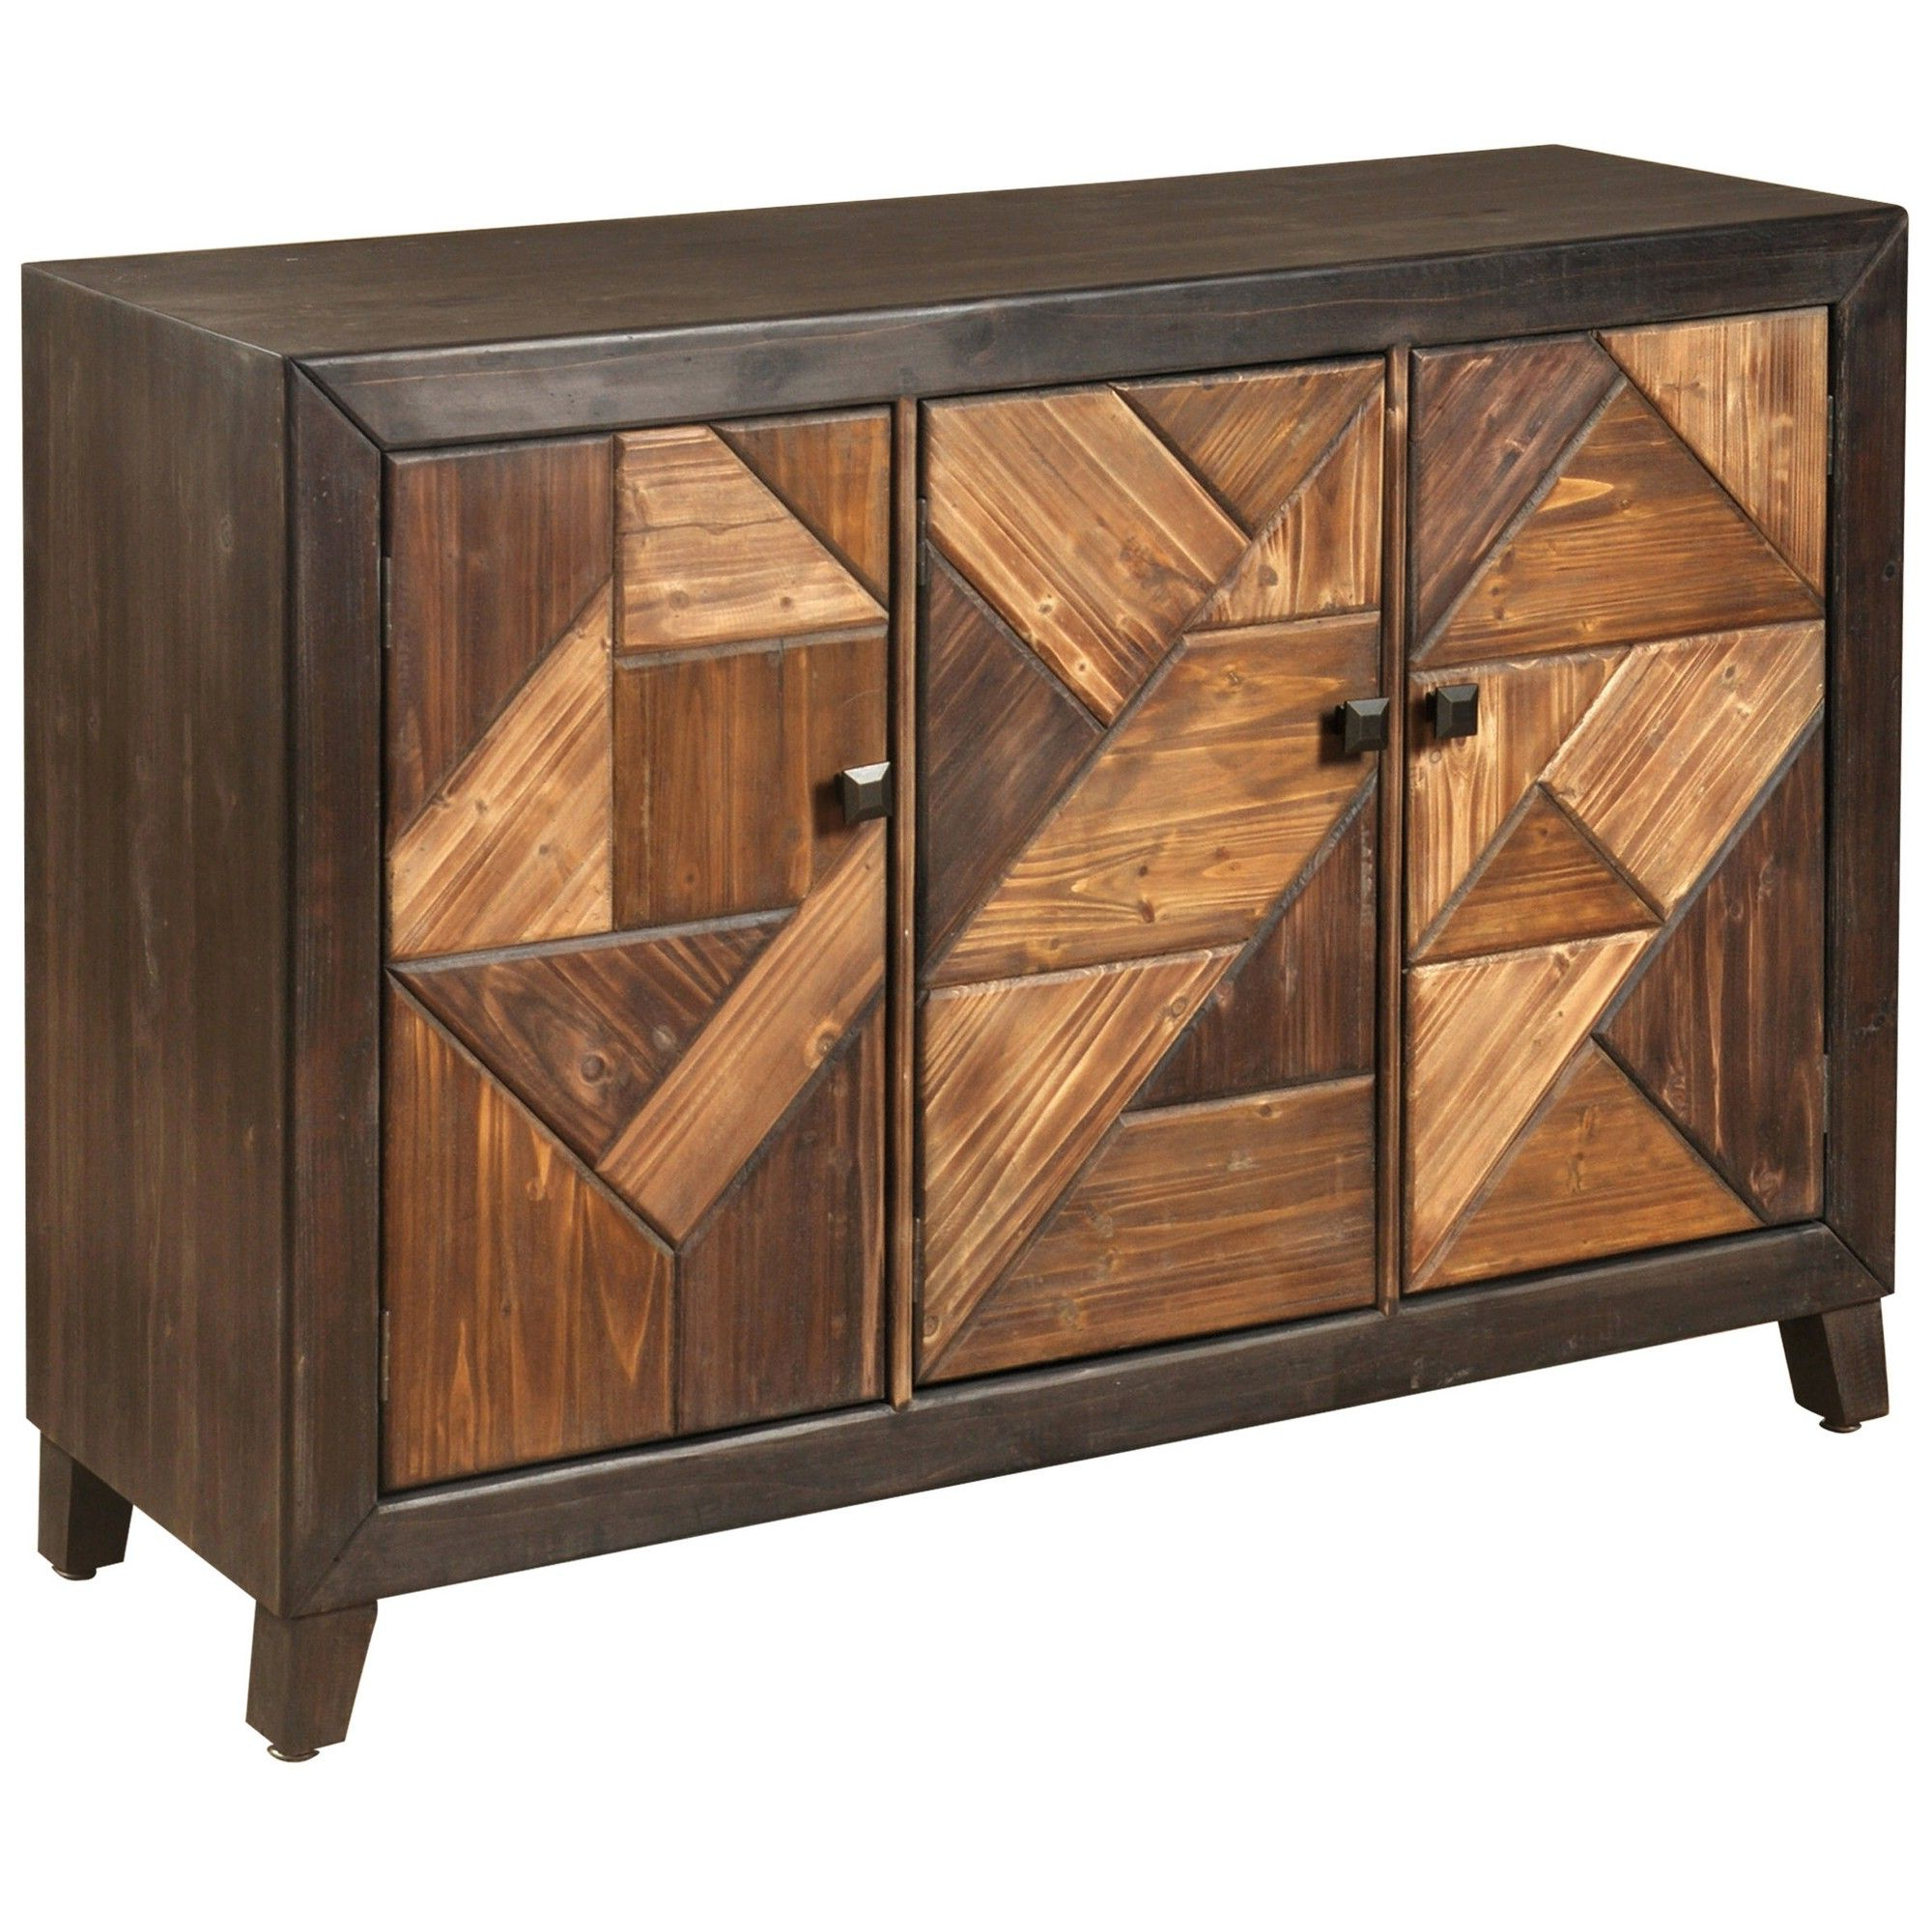 Stylecraft 3 Door Chevron Credenza Espresso Brown | Products Intended For Casolino Sideboards (View 8 of 20)